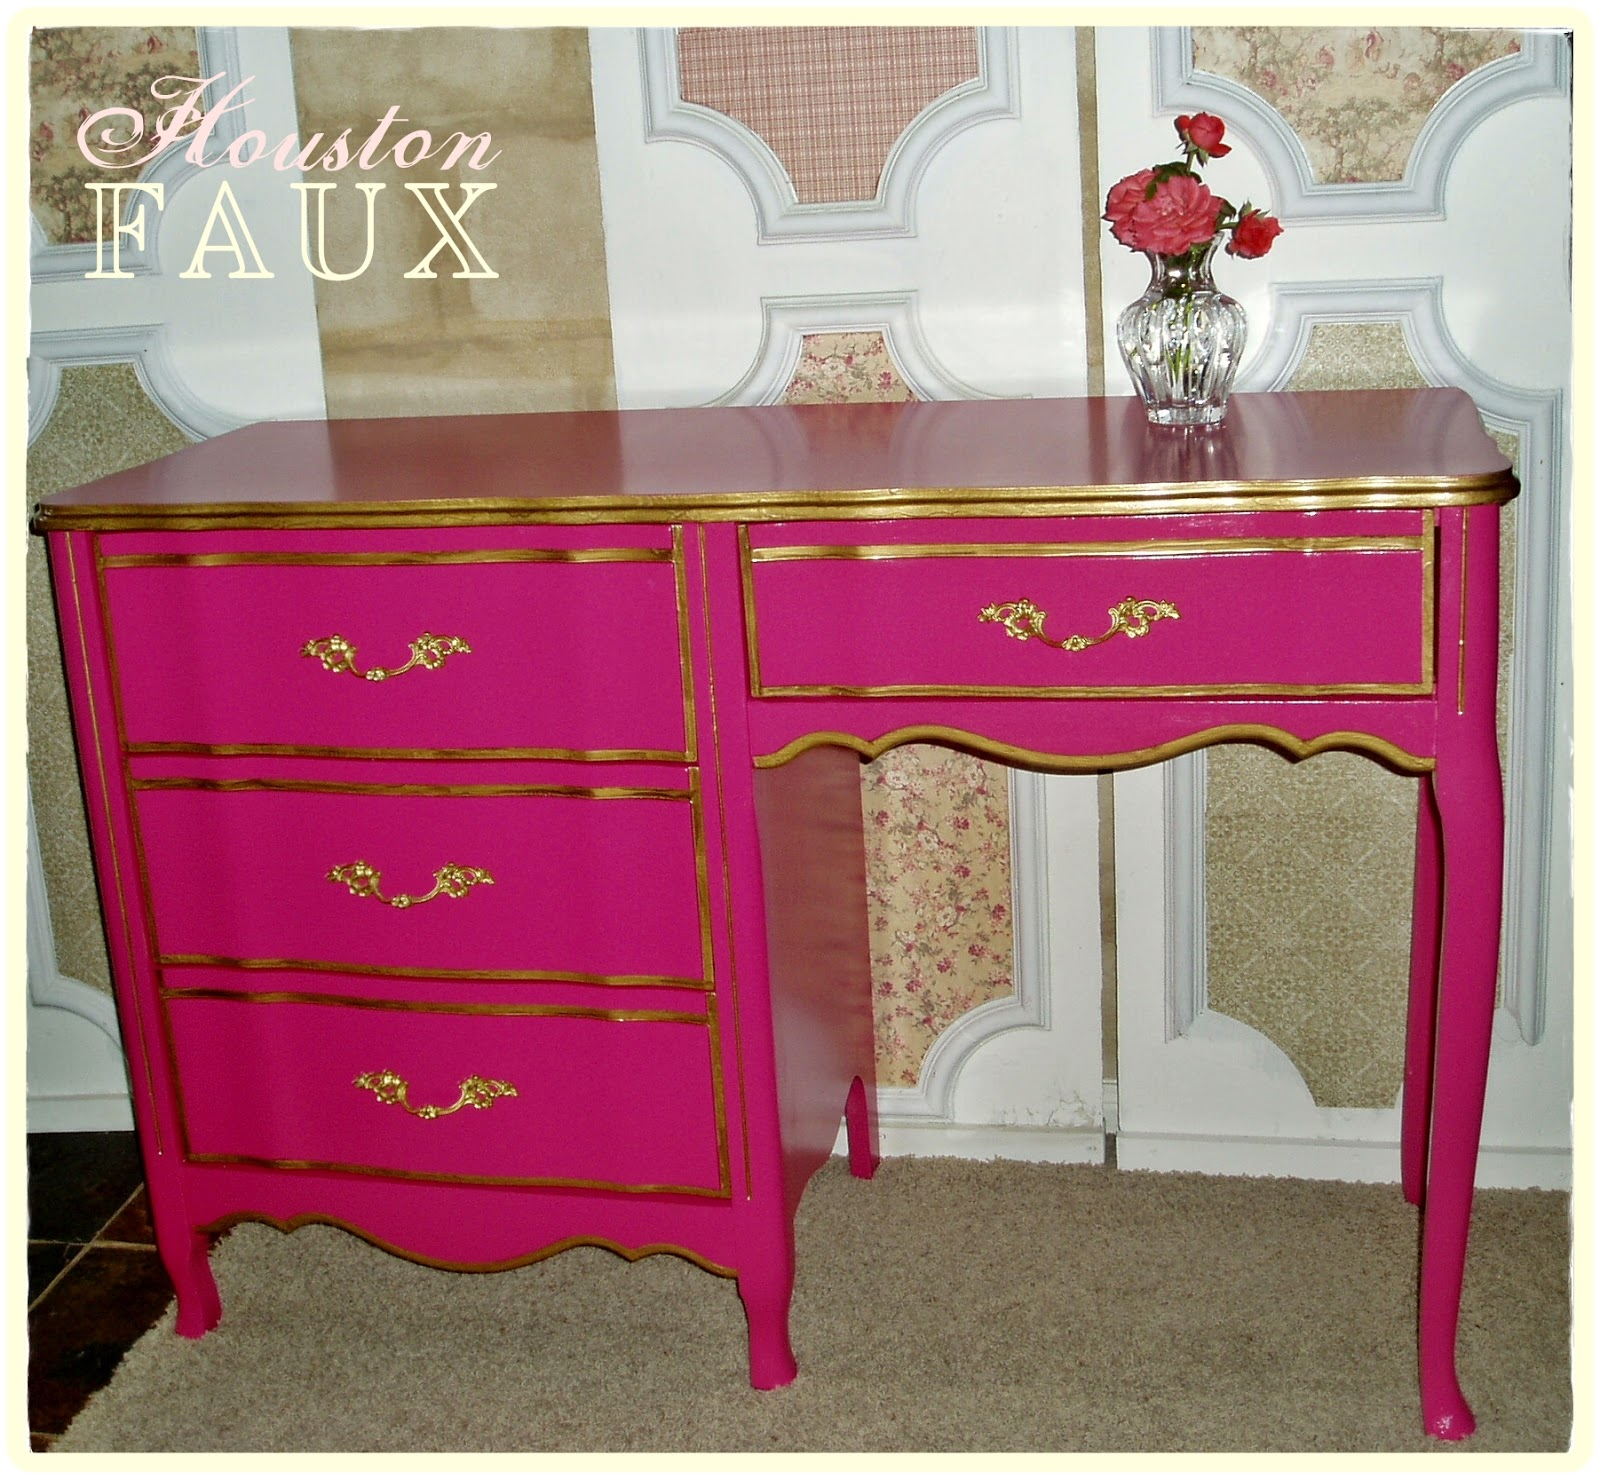 hot pink office chair pride lift parts diagram faux painting 43 furniture the quotstephanie quot victoria 39s